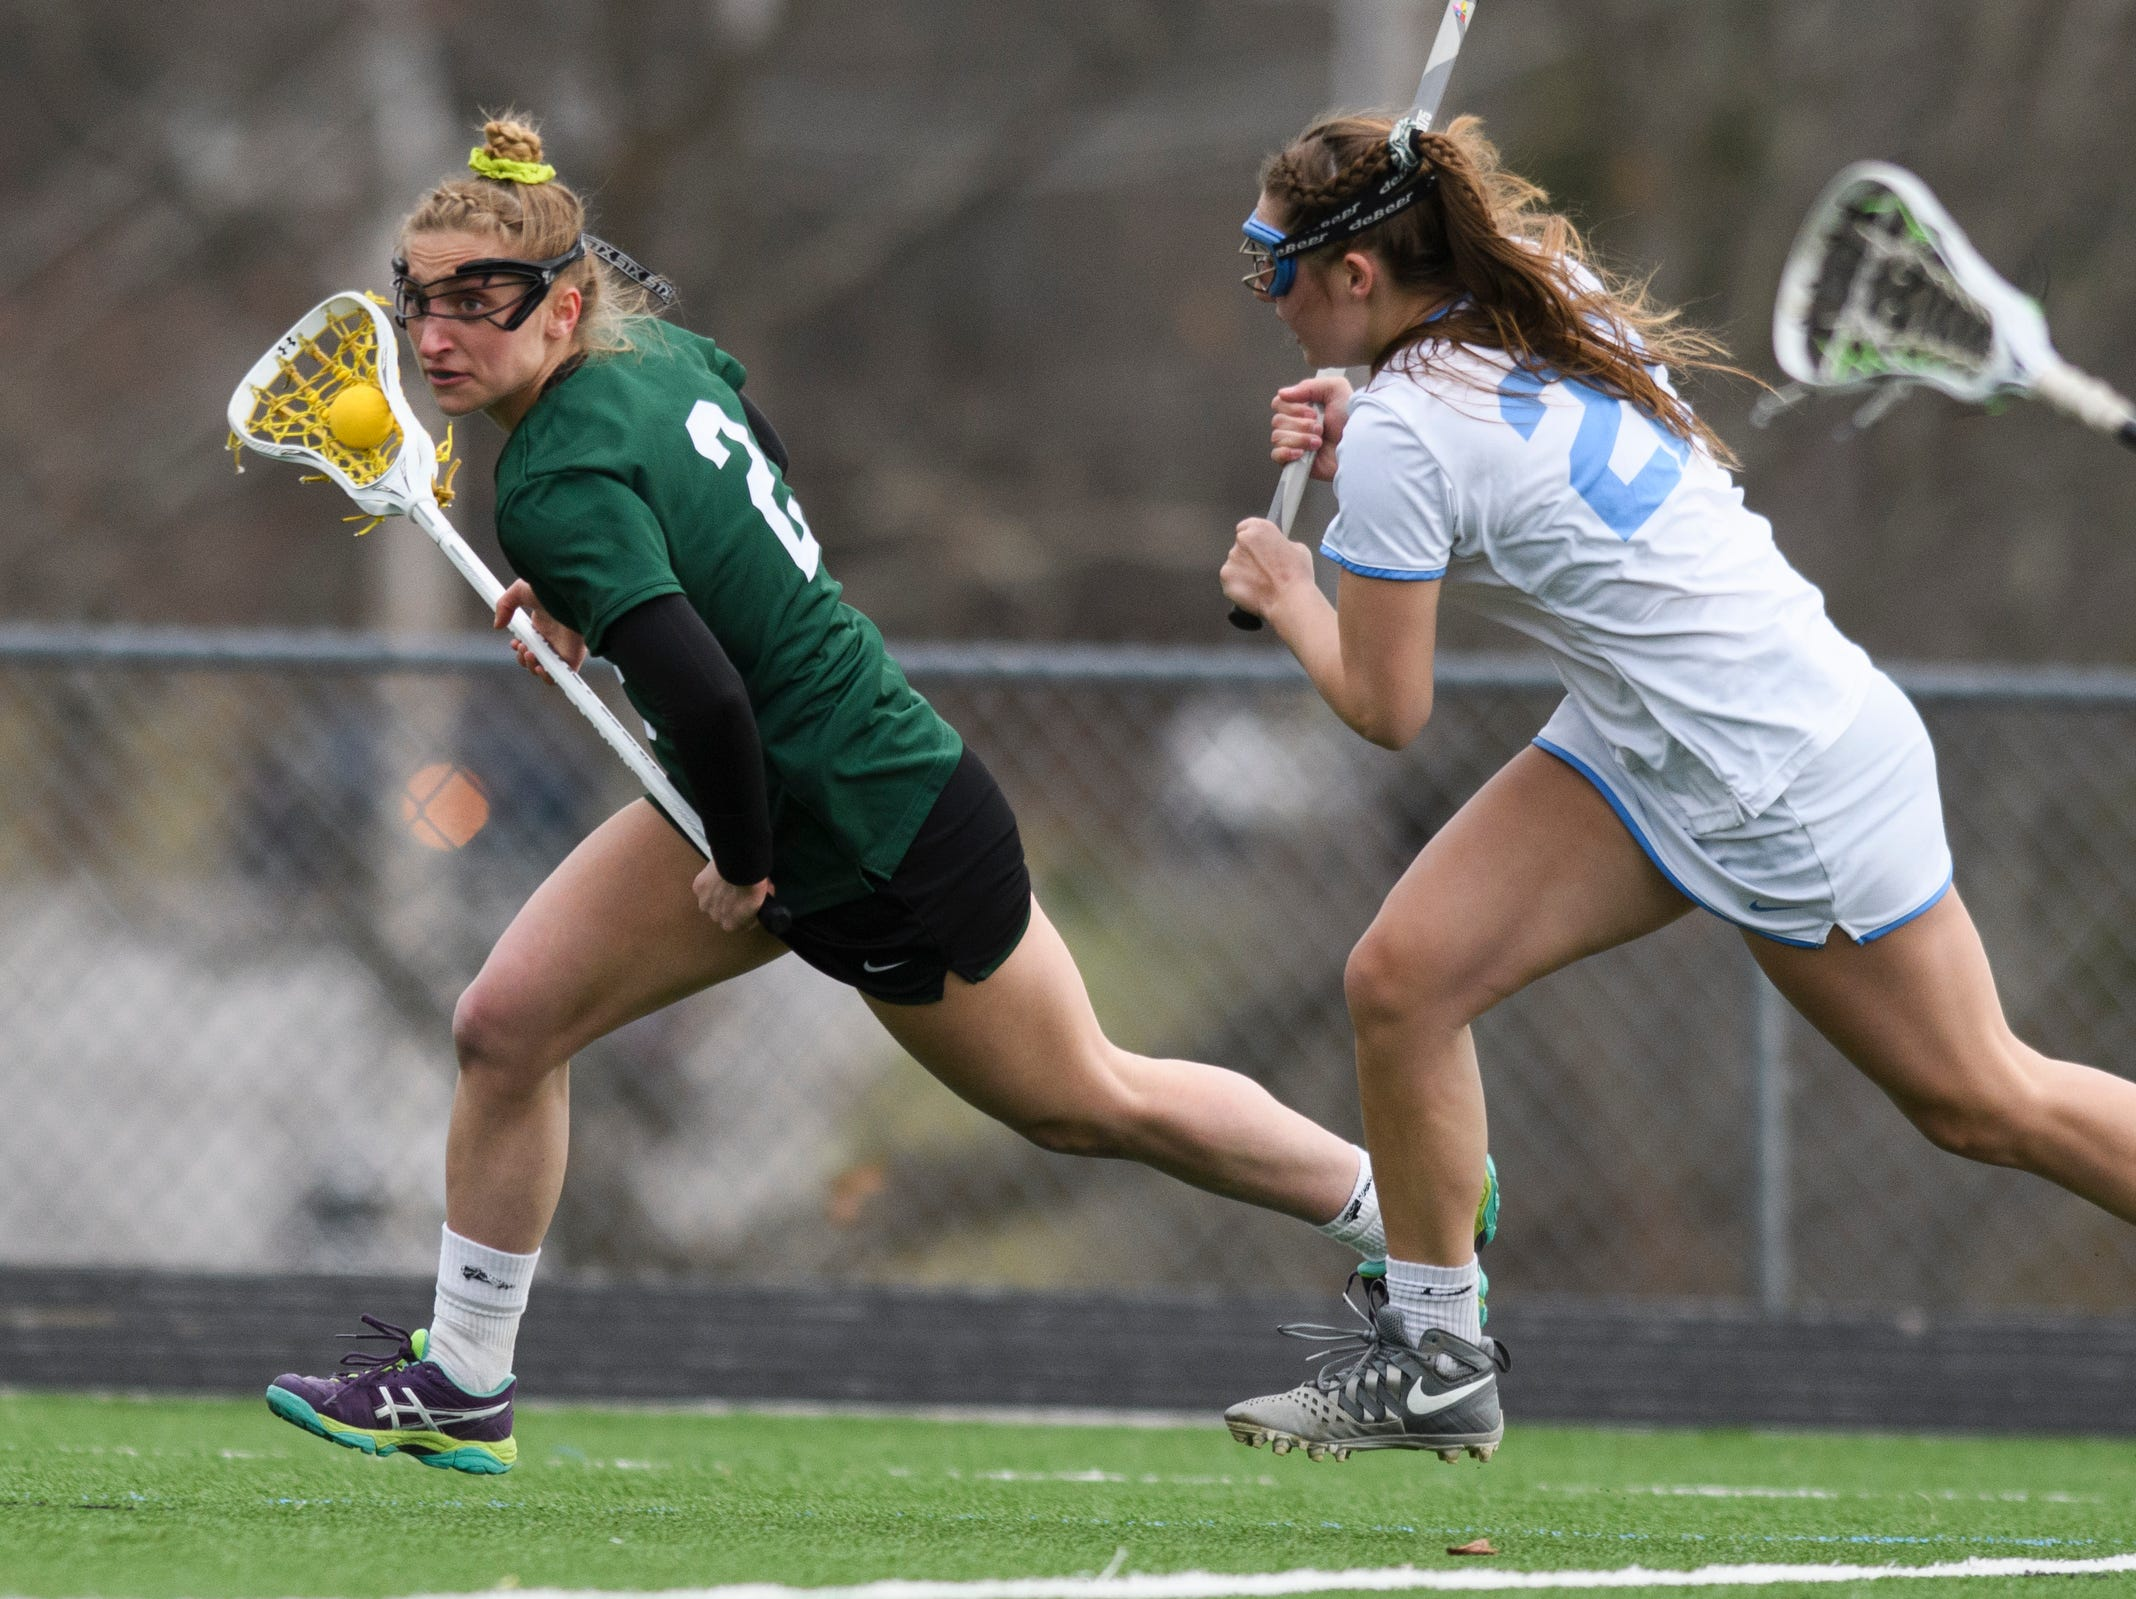 Rice's Lisa McNamara (2) runs down the field with the ball during the girls lacrosse game between the Rice Green Knights and the South Burlington Wolves at South Burlington High School on Tuesday afternoon April 16, 2019 in South Burlington, Vermont.